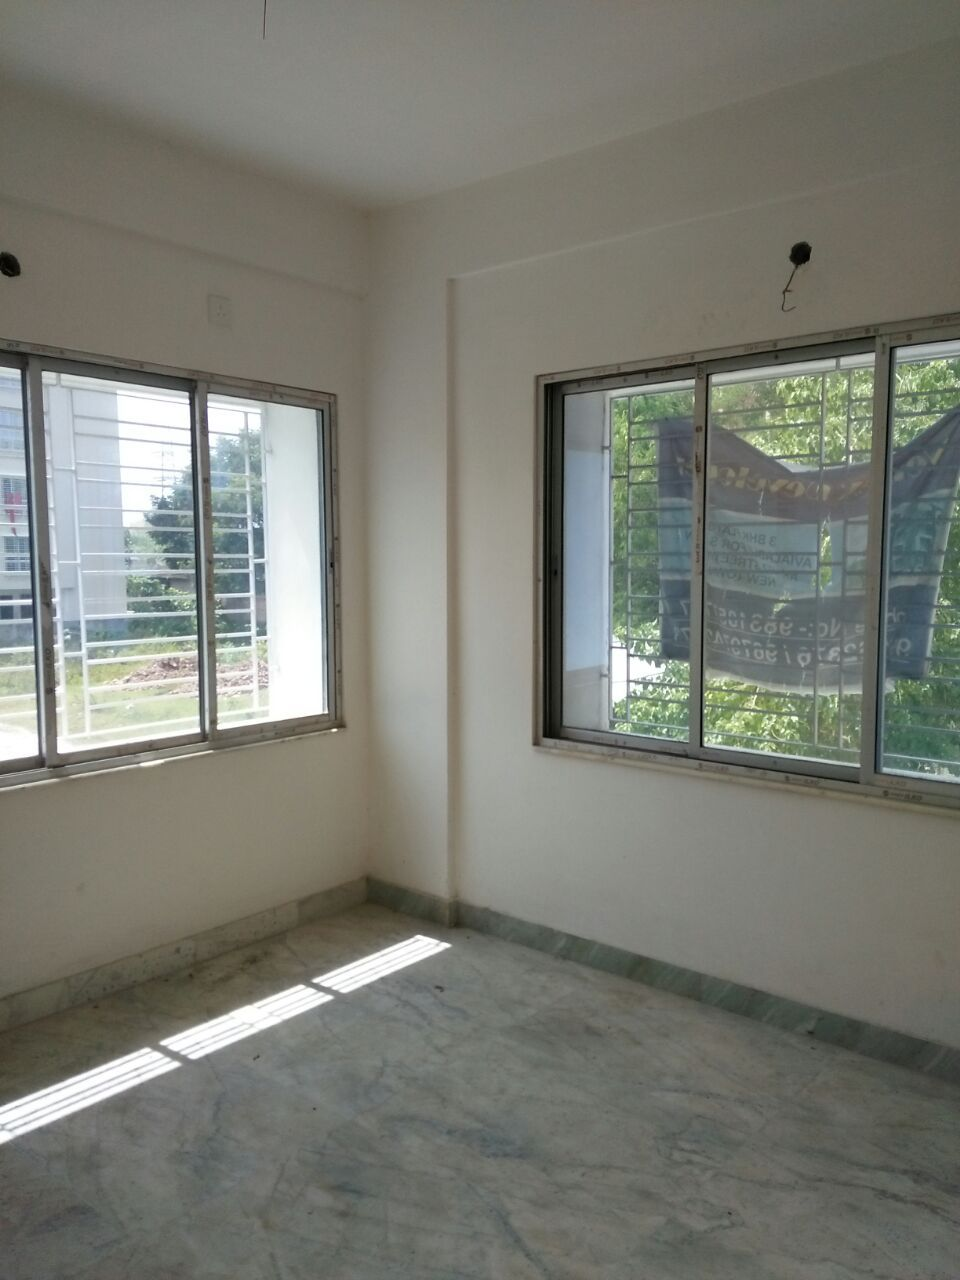 1 BHK Residential house for rent at salt lake sector-3